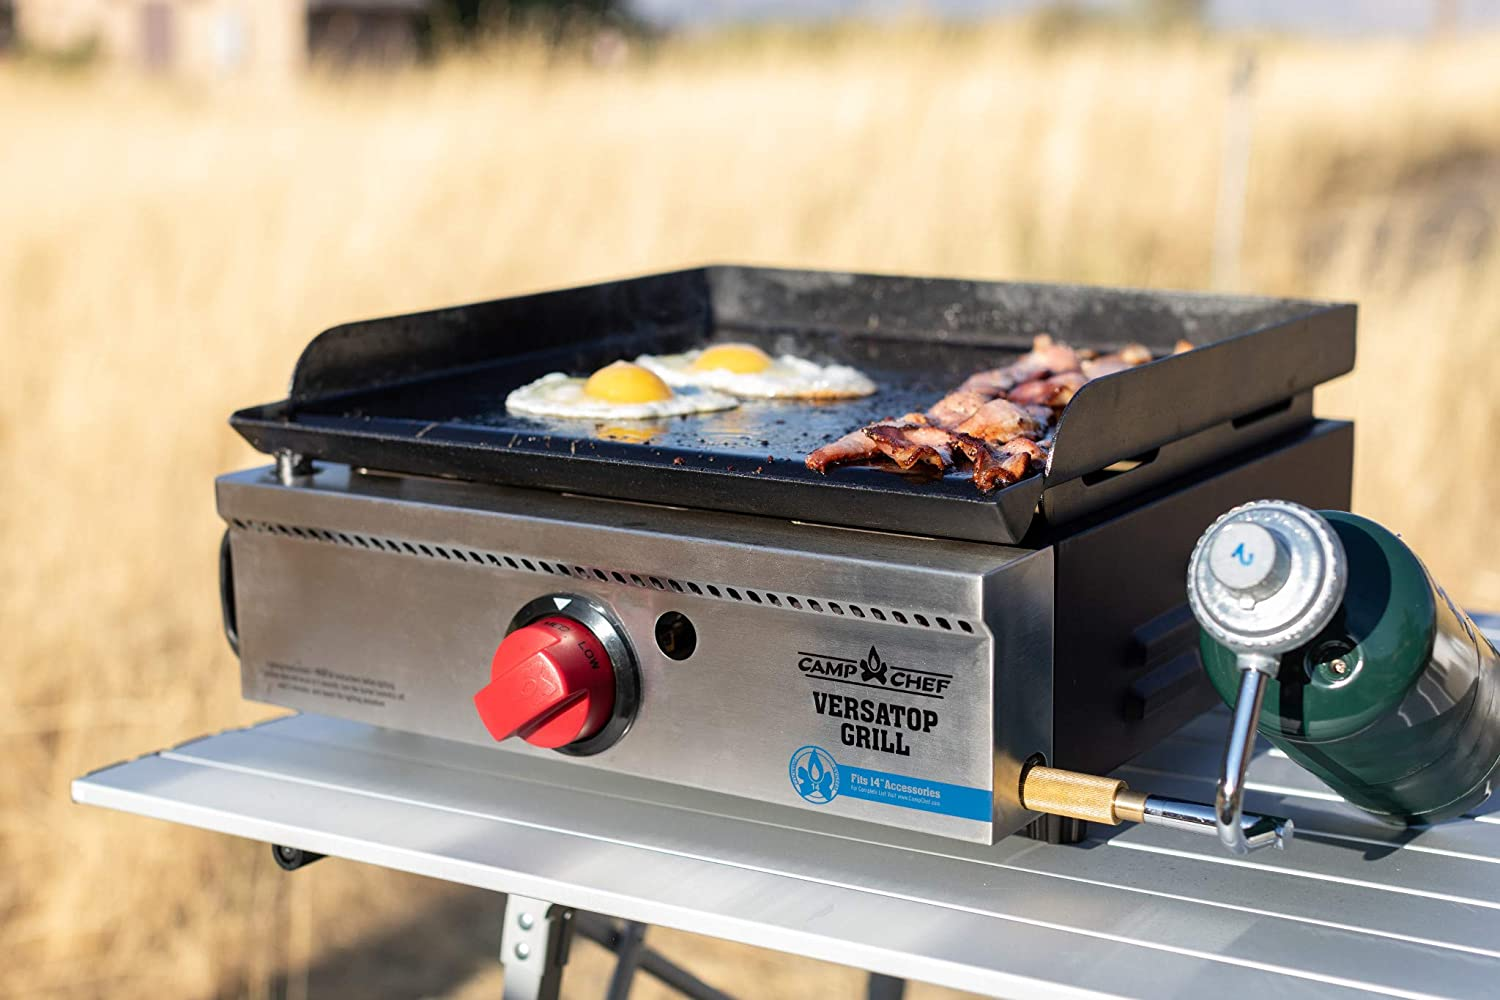 Camp Chef VersaTop 250 Single Burner grill